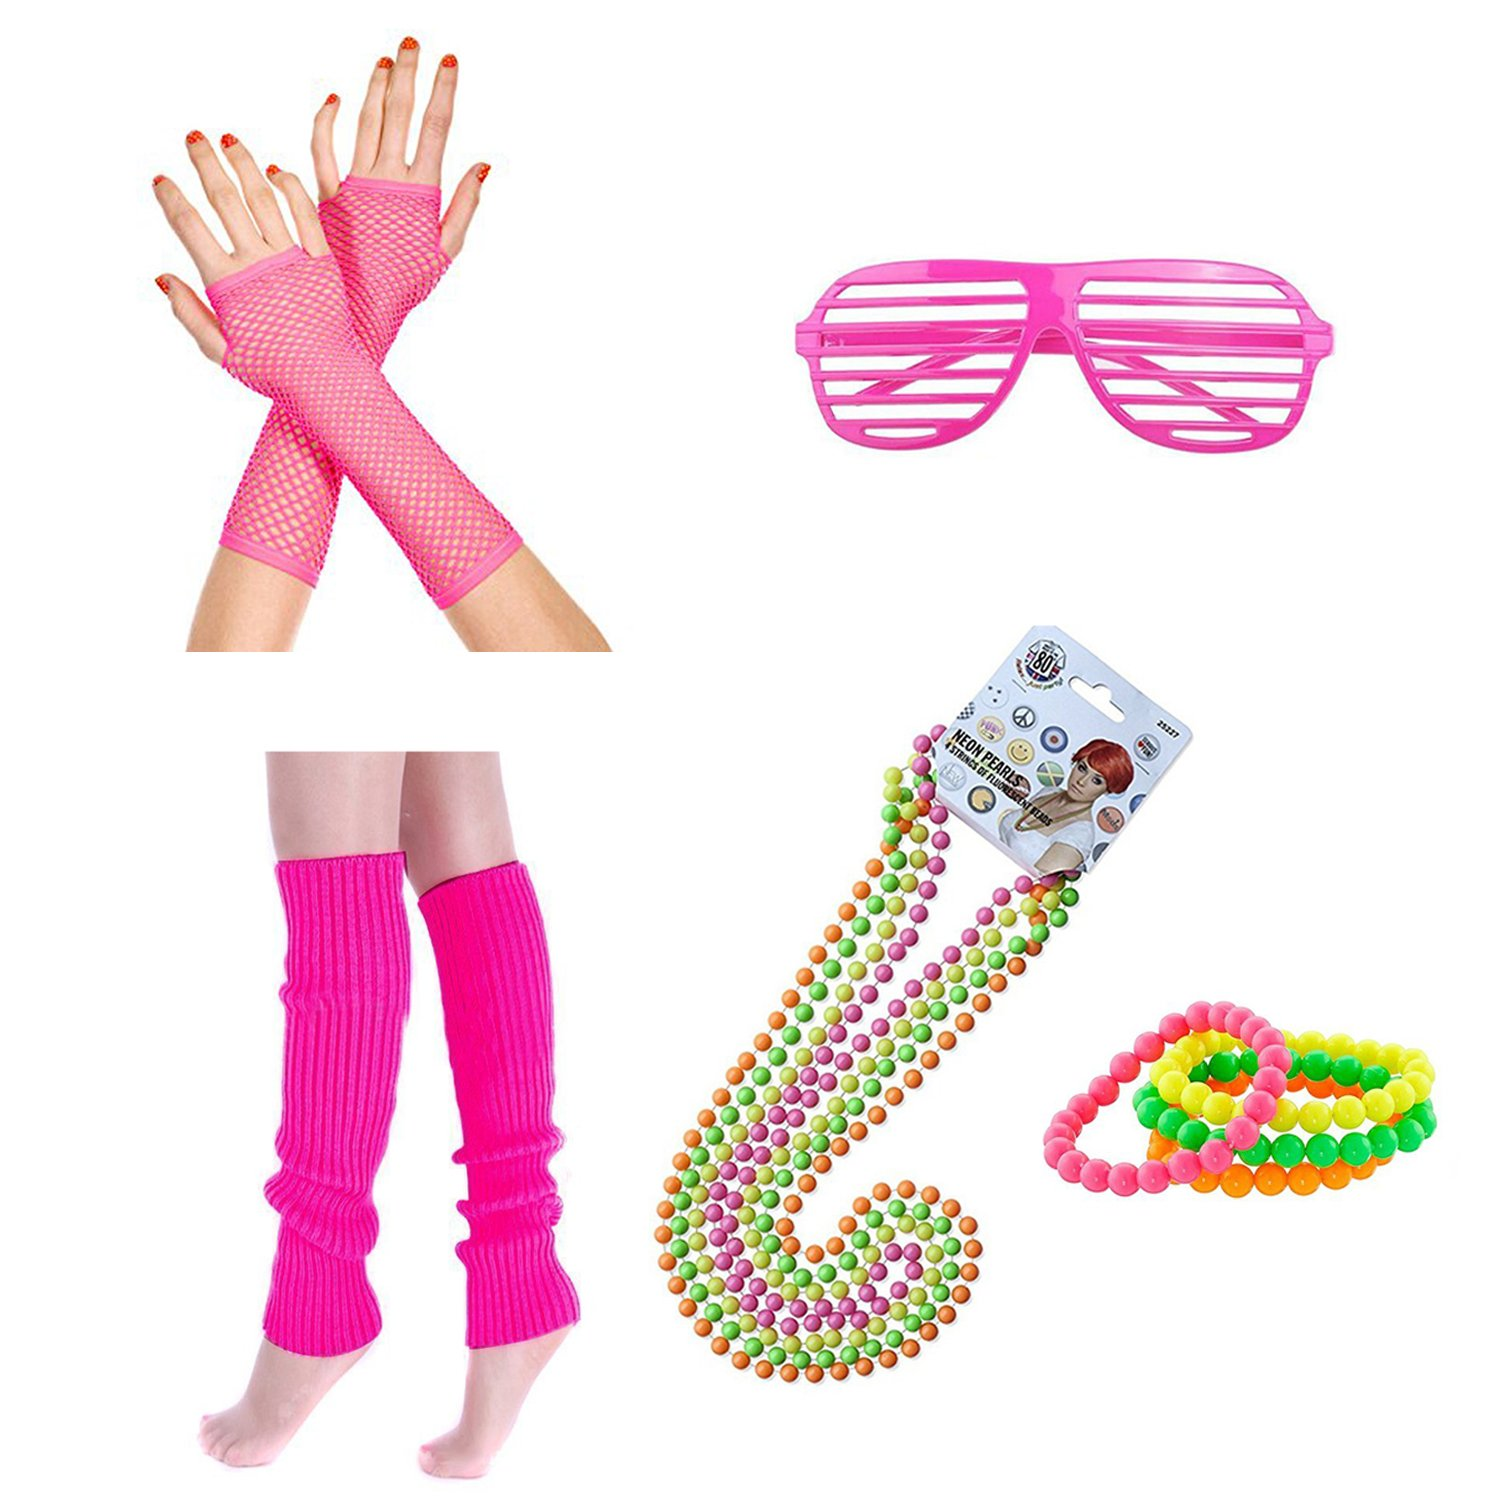 ResPai 1980s Fancy Dress Outfits Neon Legwarmers Fishnet Gloves Multicolour Bead Necklaces and Bracelets Neon Novelty Sunglasses 80s Party Costumes Accessories Set for Girls Women Night Out Party Supplies, 5 in 1